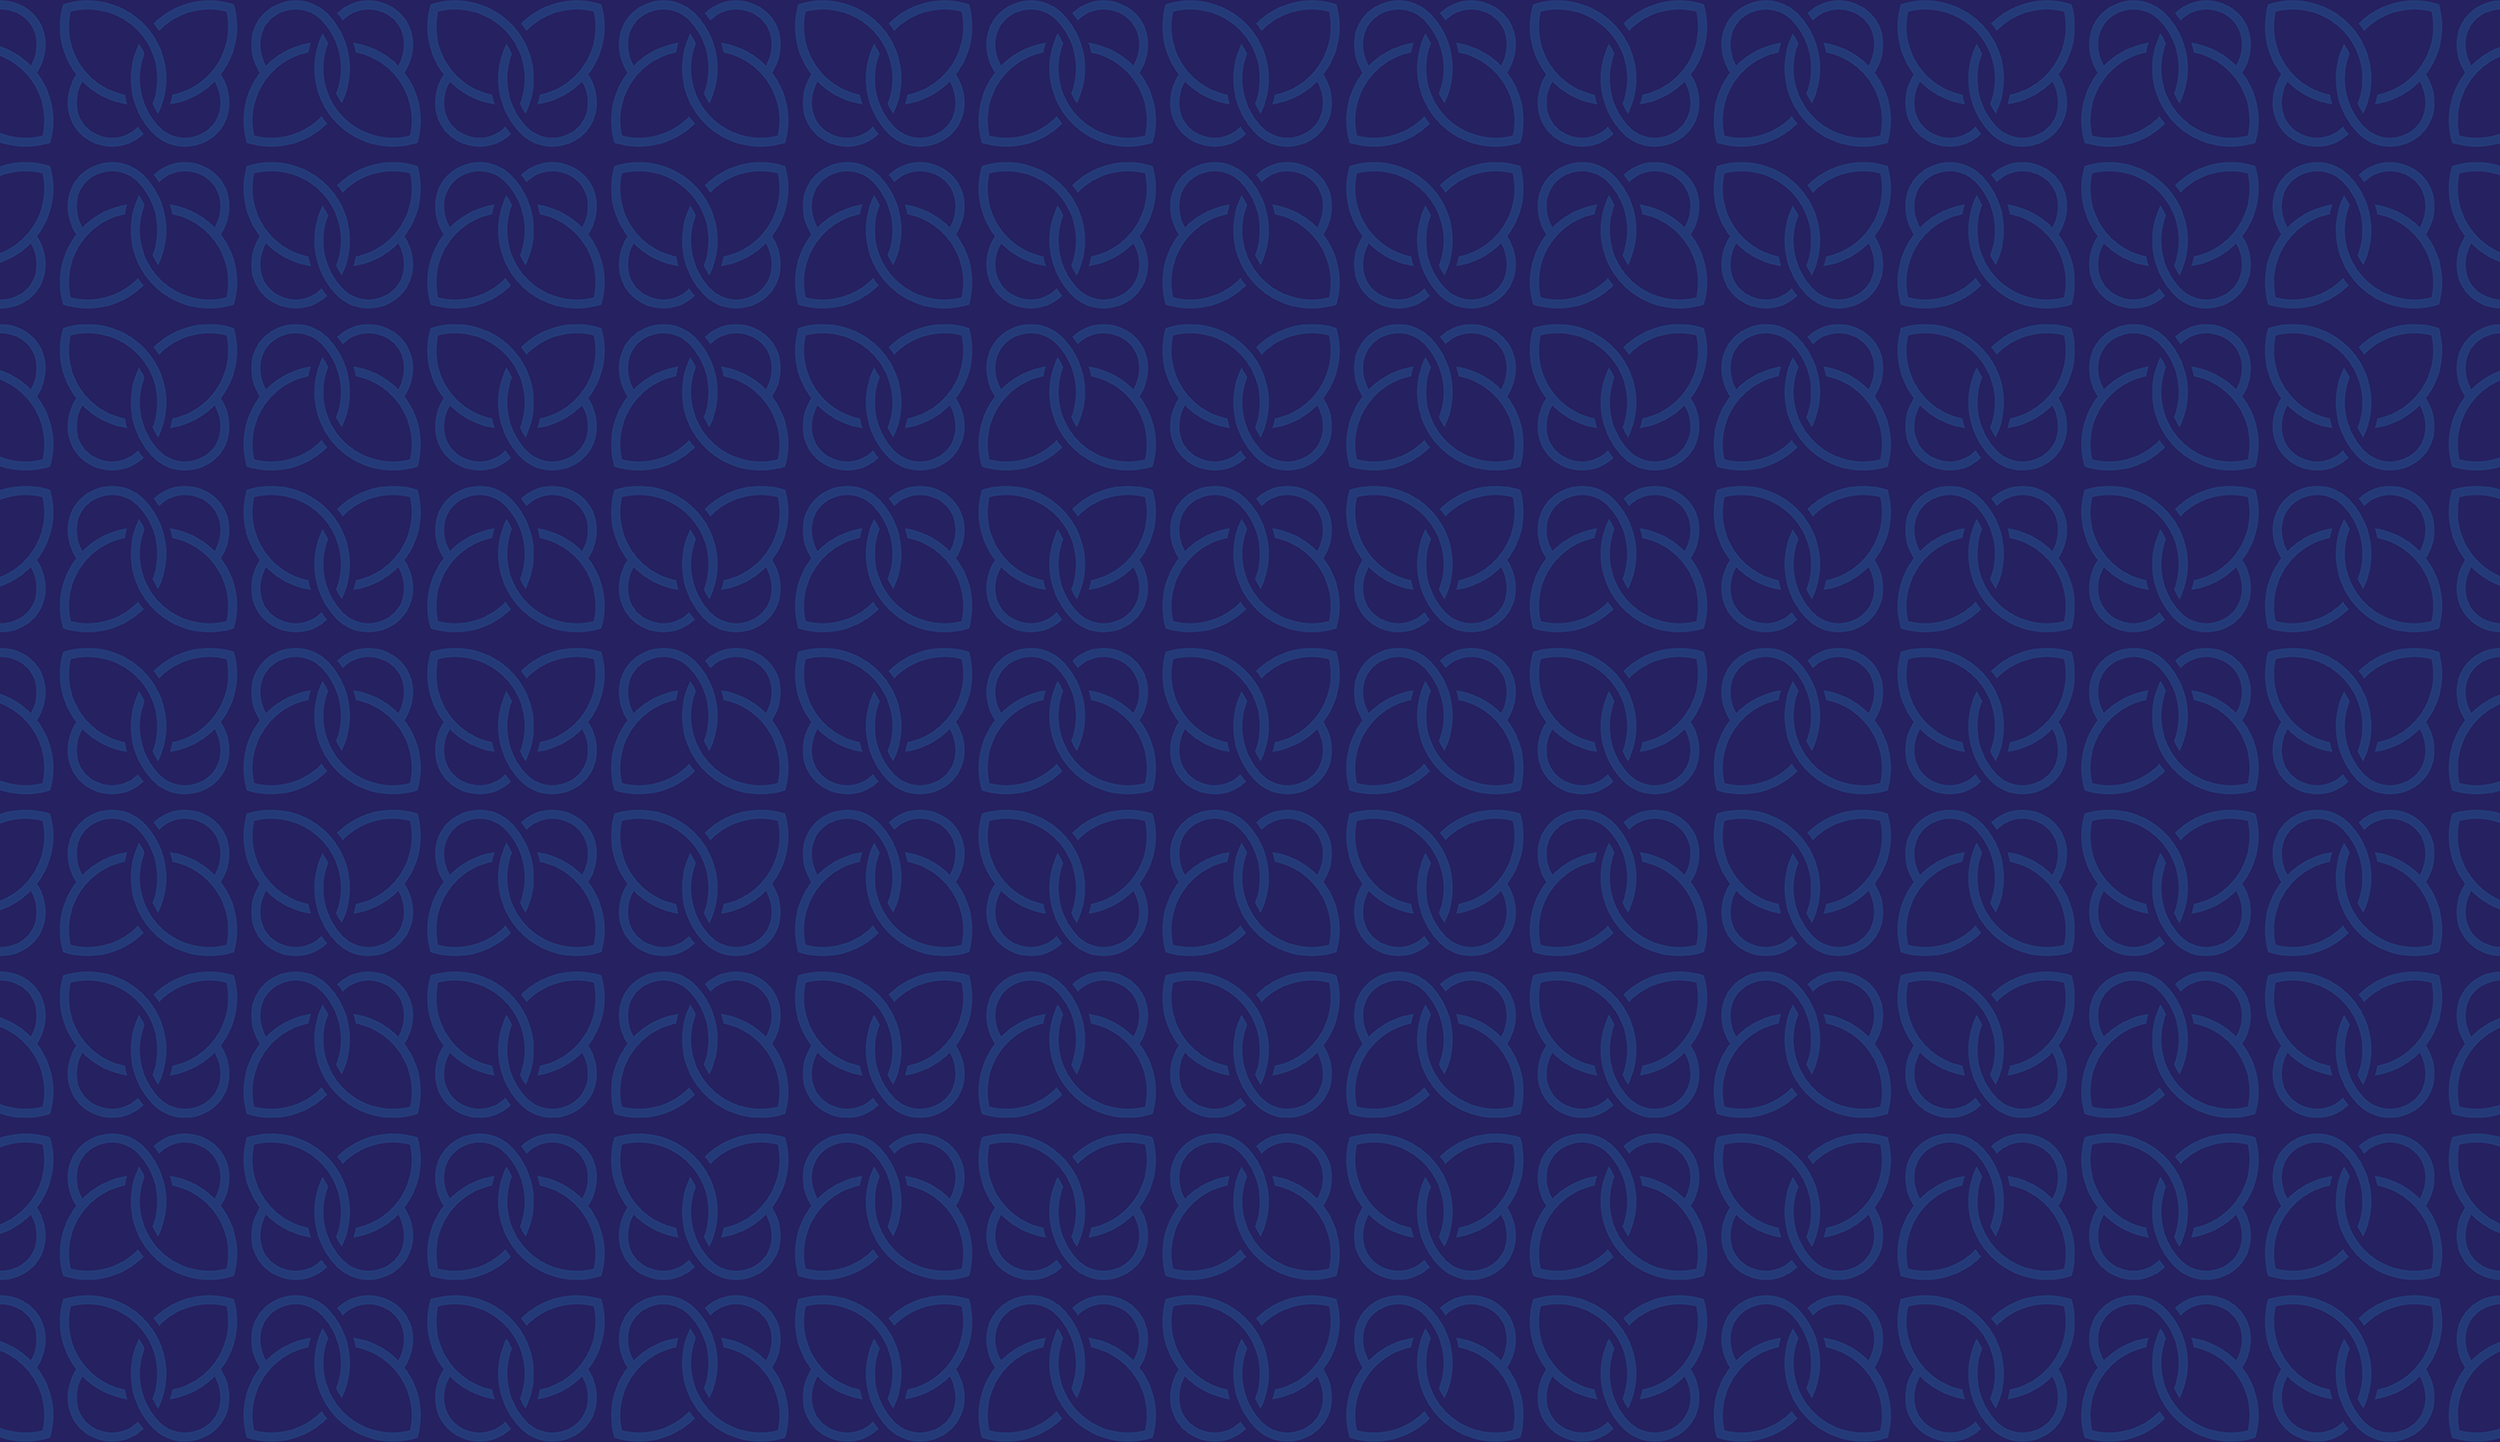 hero_butterfly_pattern.png